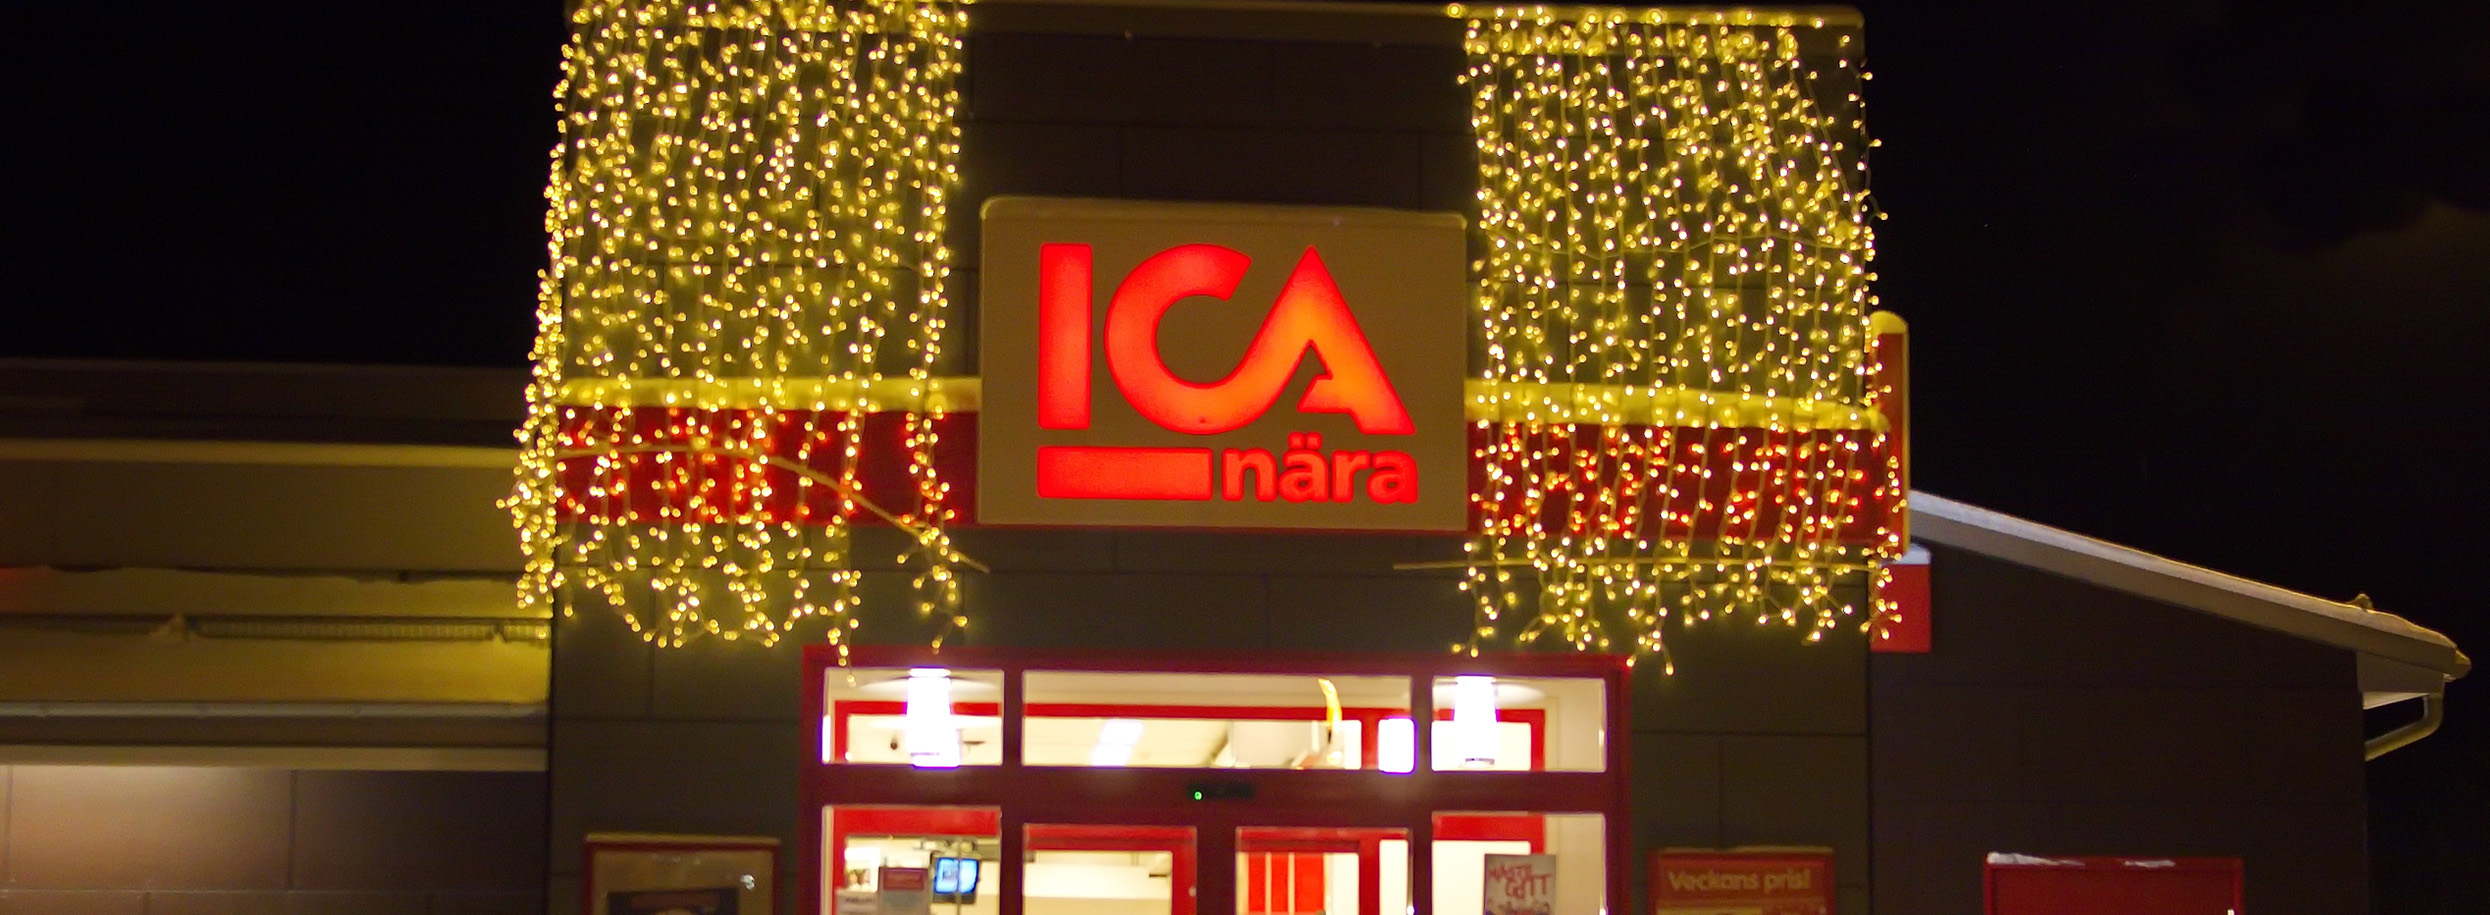 Christmas decorated ICA store